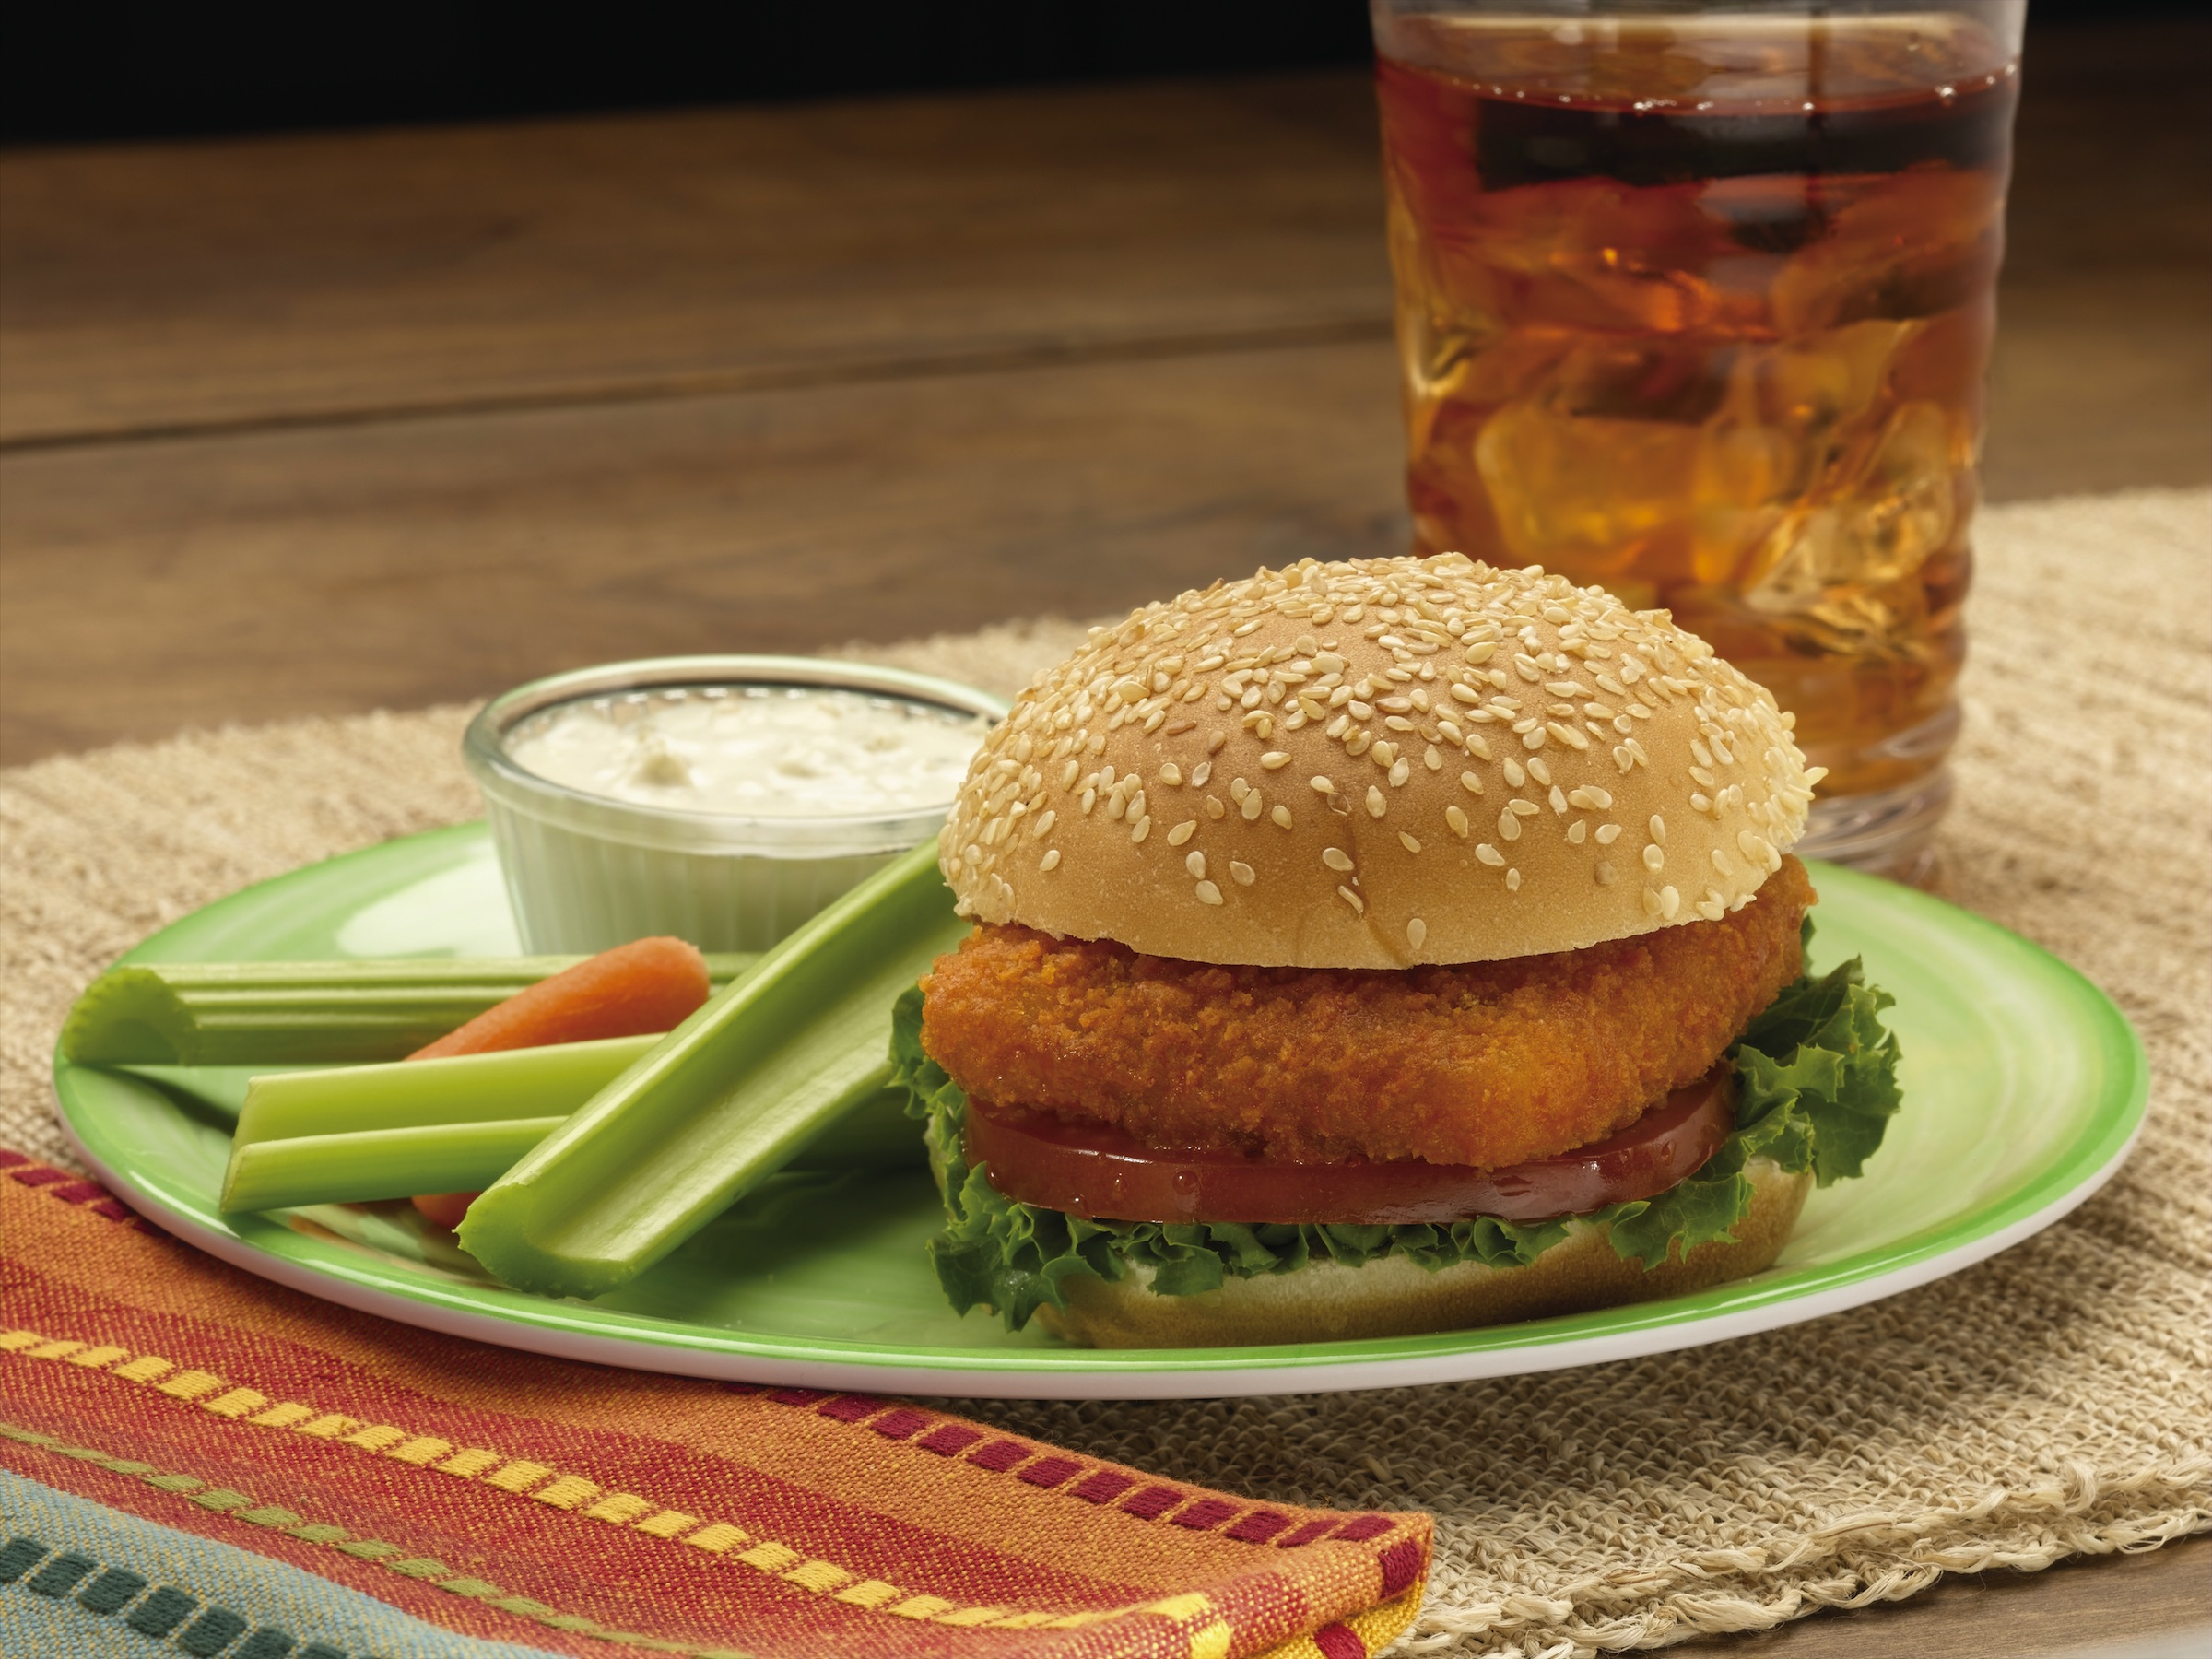 Gorton s seafood celebrates national sandwich month with for Fish sandwich calories